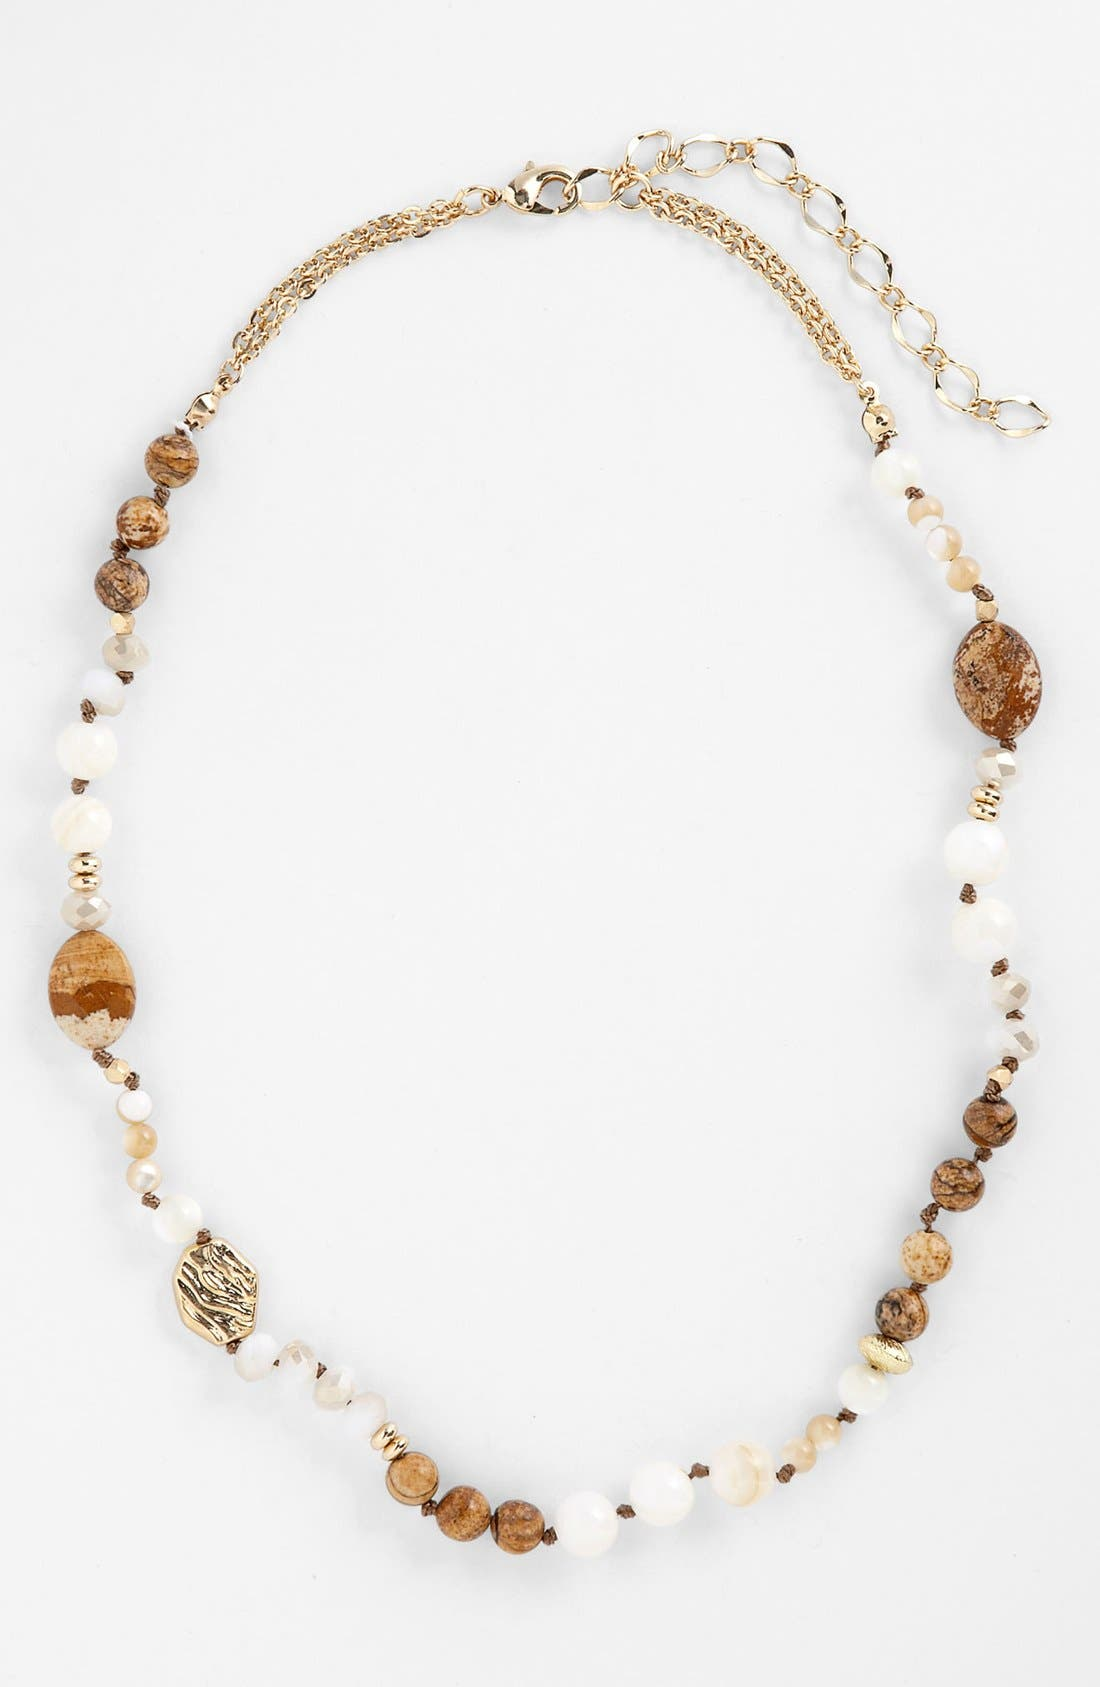 Alternate Image 1 Selected - Nordstrom 'Pebbles' Beaded Necklace